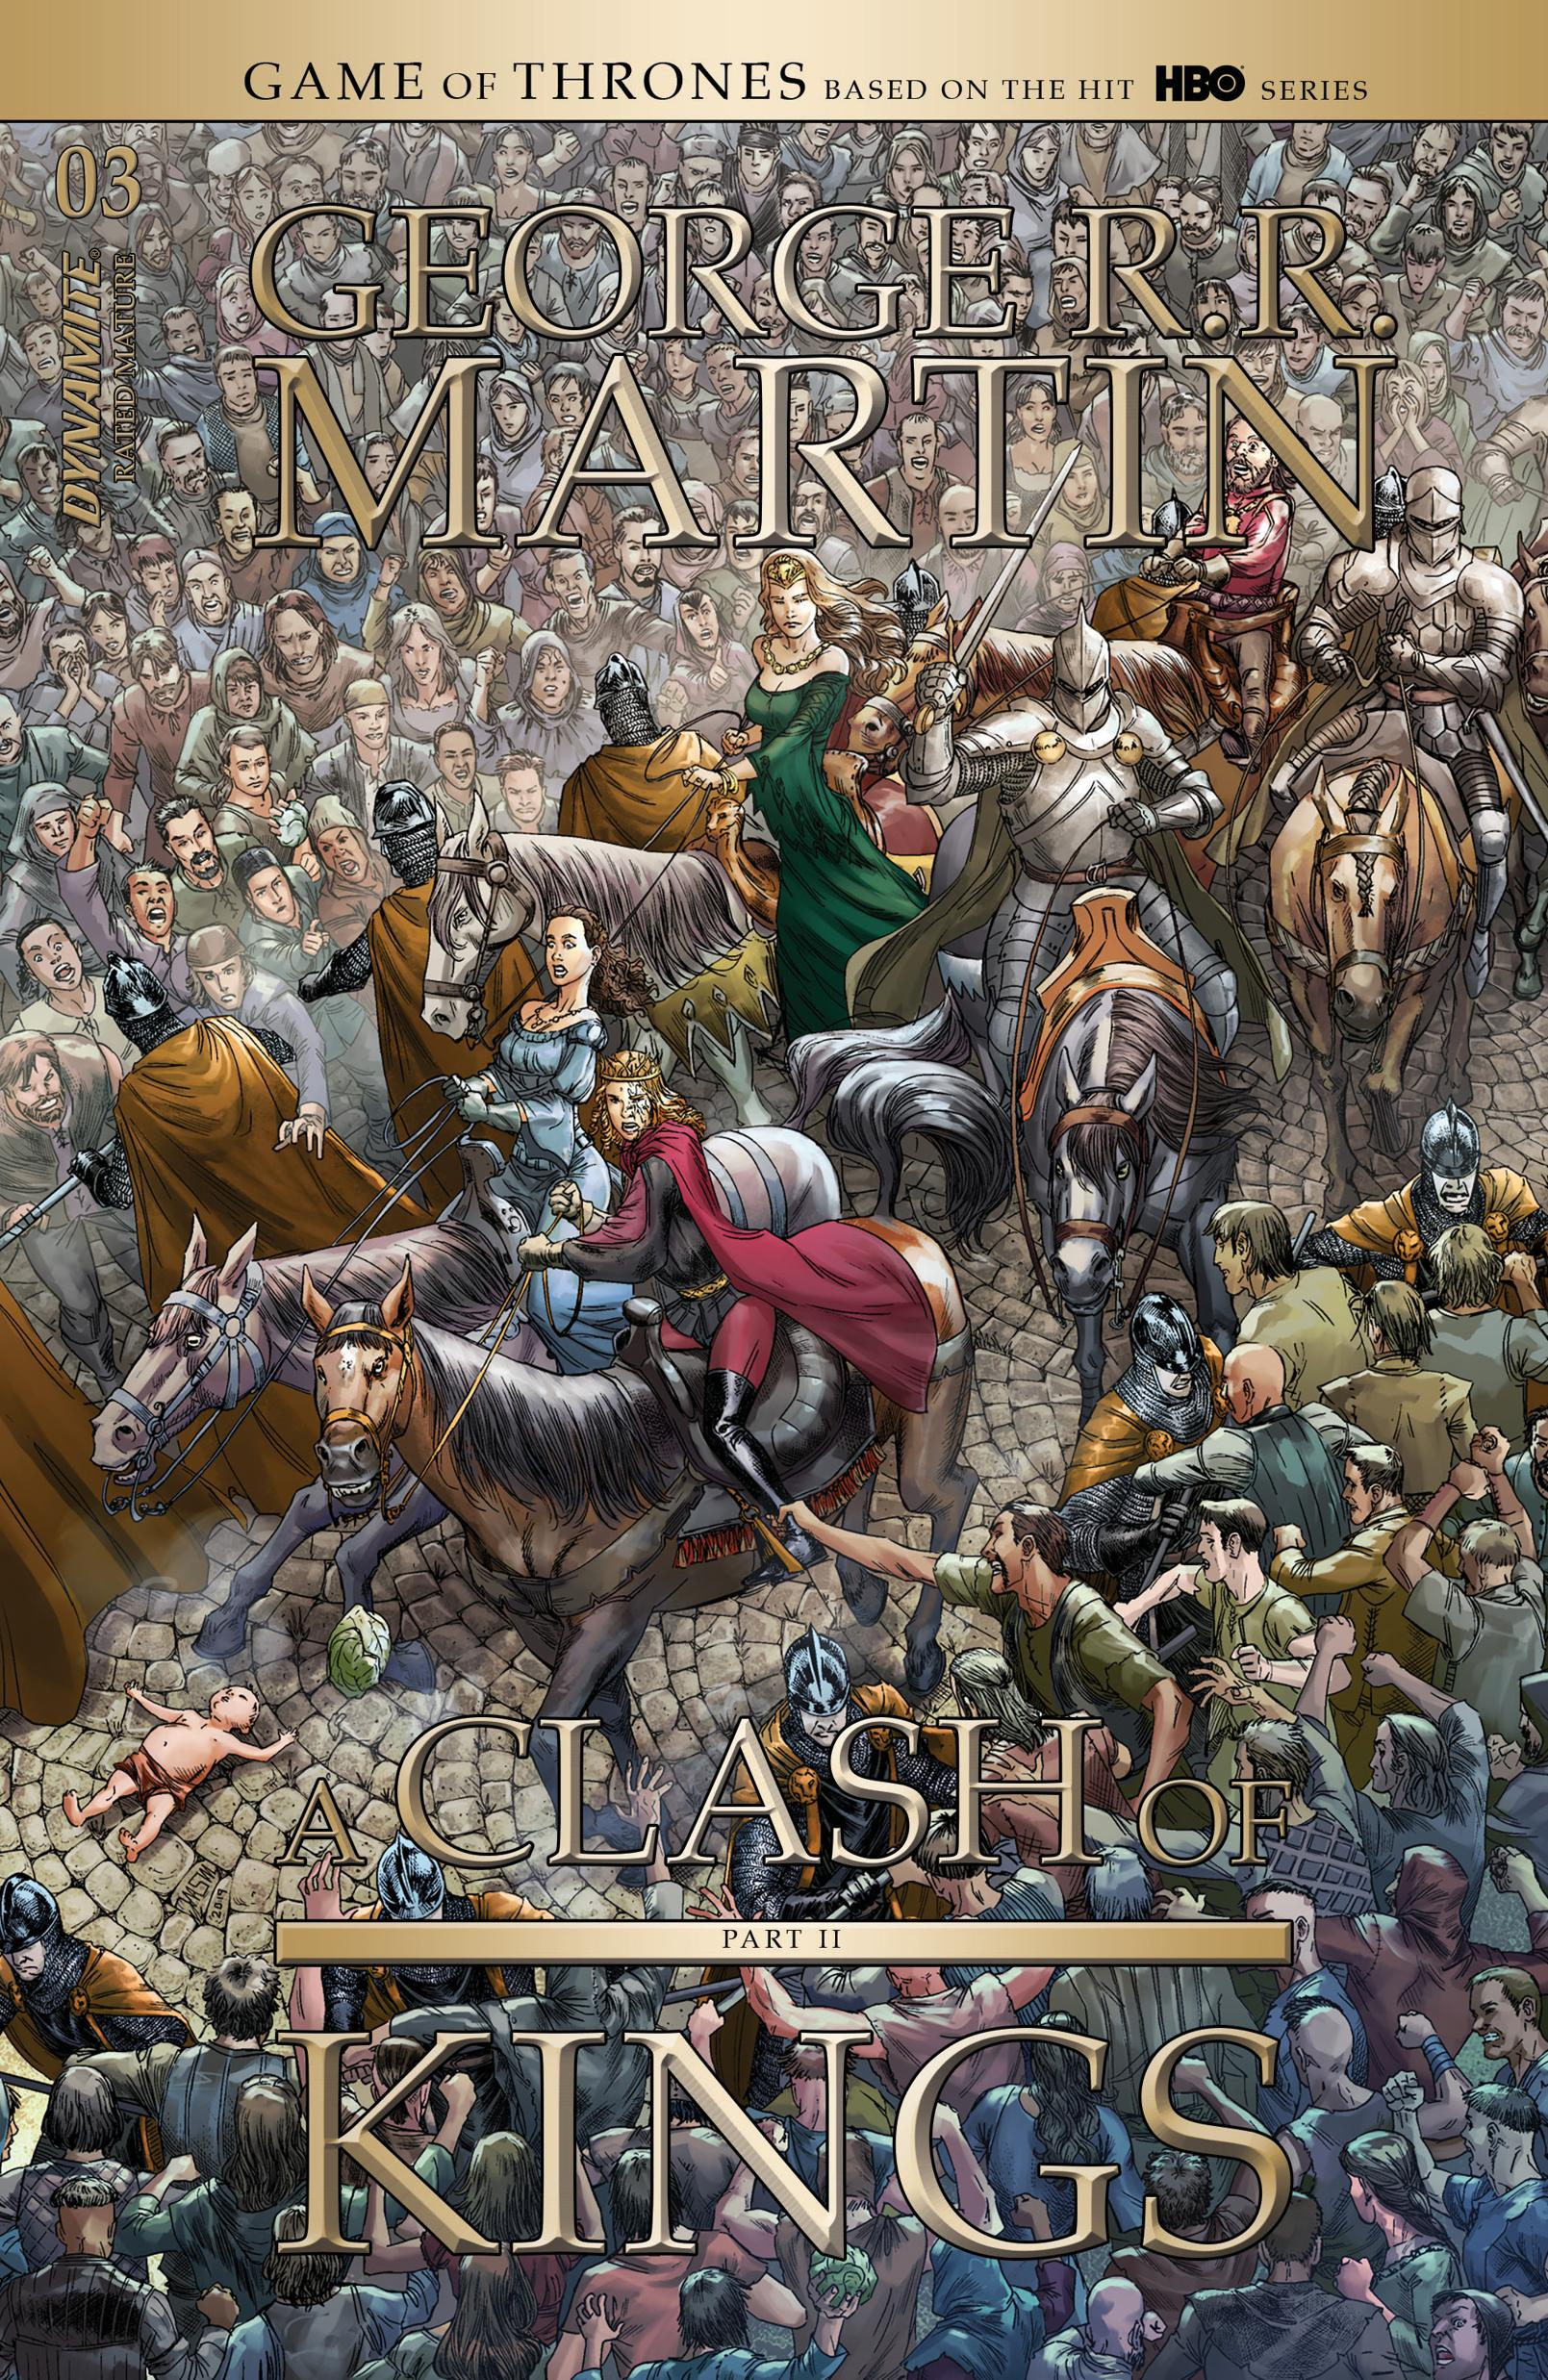 George R R Martins A Clash of Kings 003 2020 2 covers digital Son of Ultron